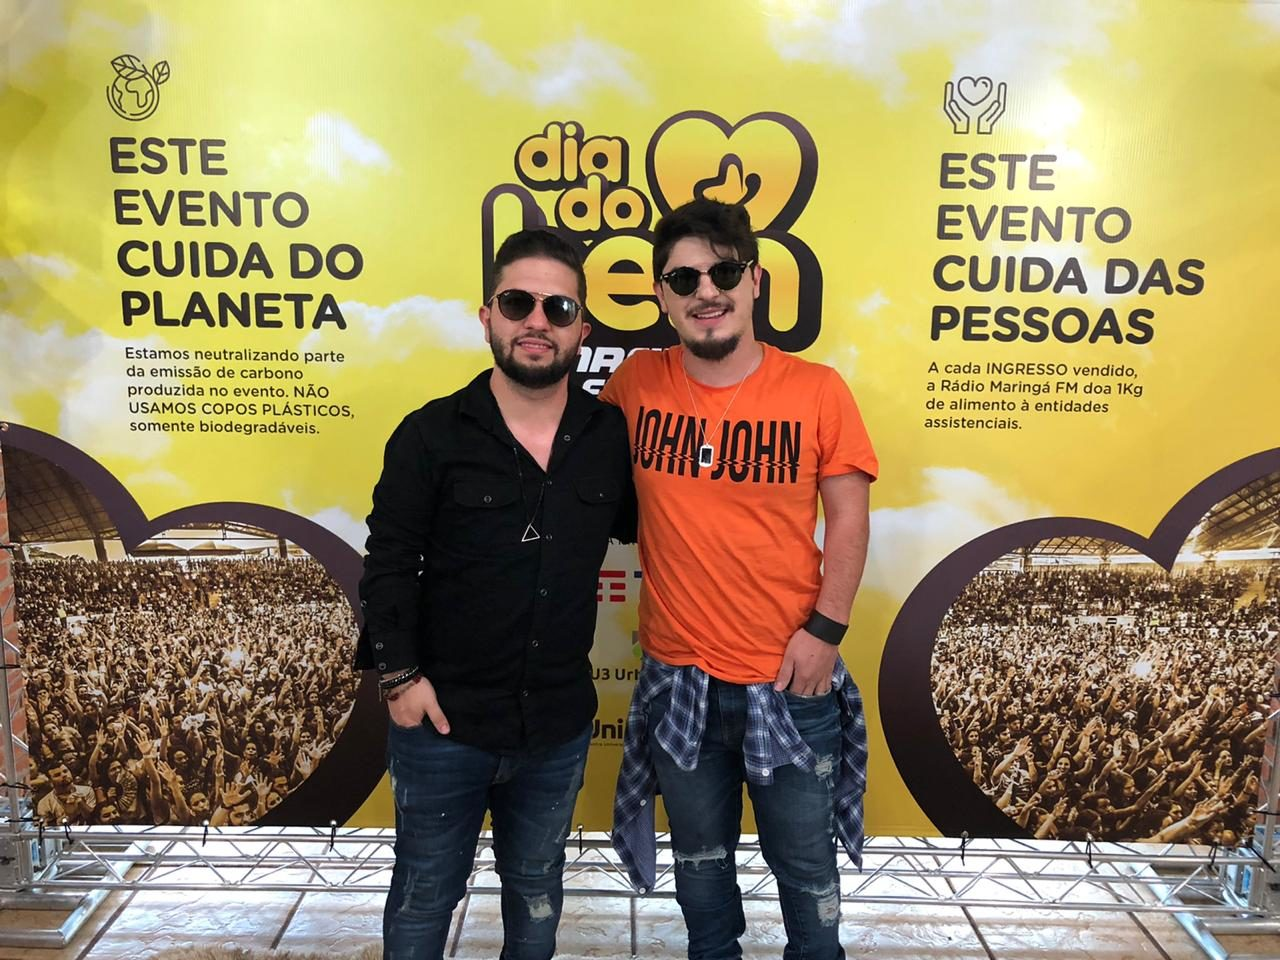 Podcast, Bate Papo, Júnior e Cézar – Dia do Bem Maringá FM